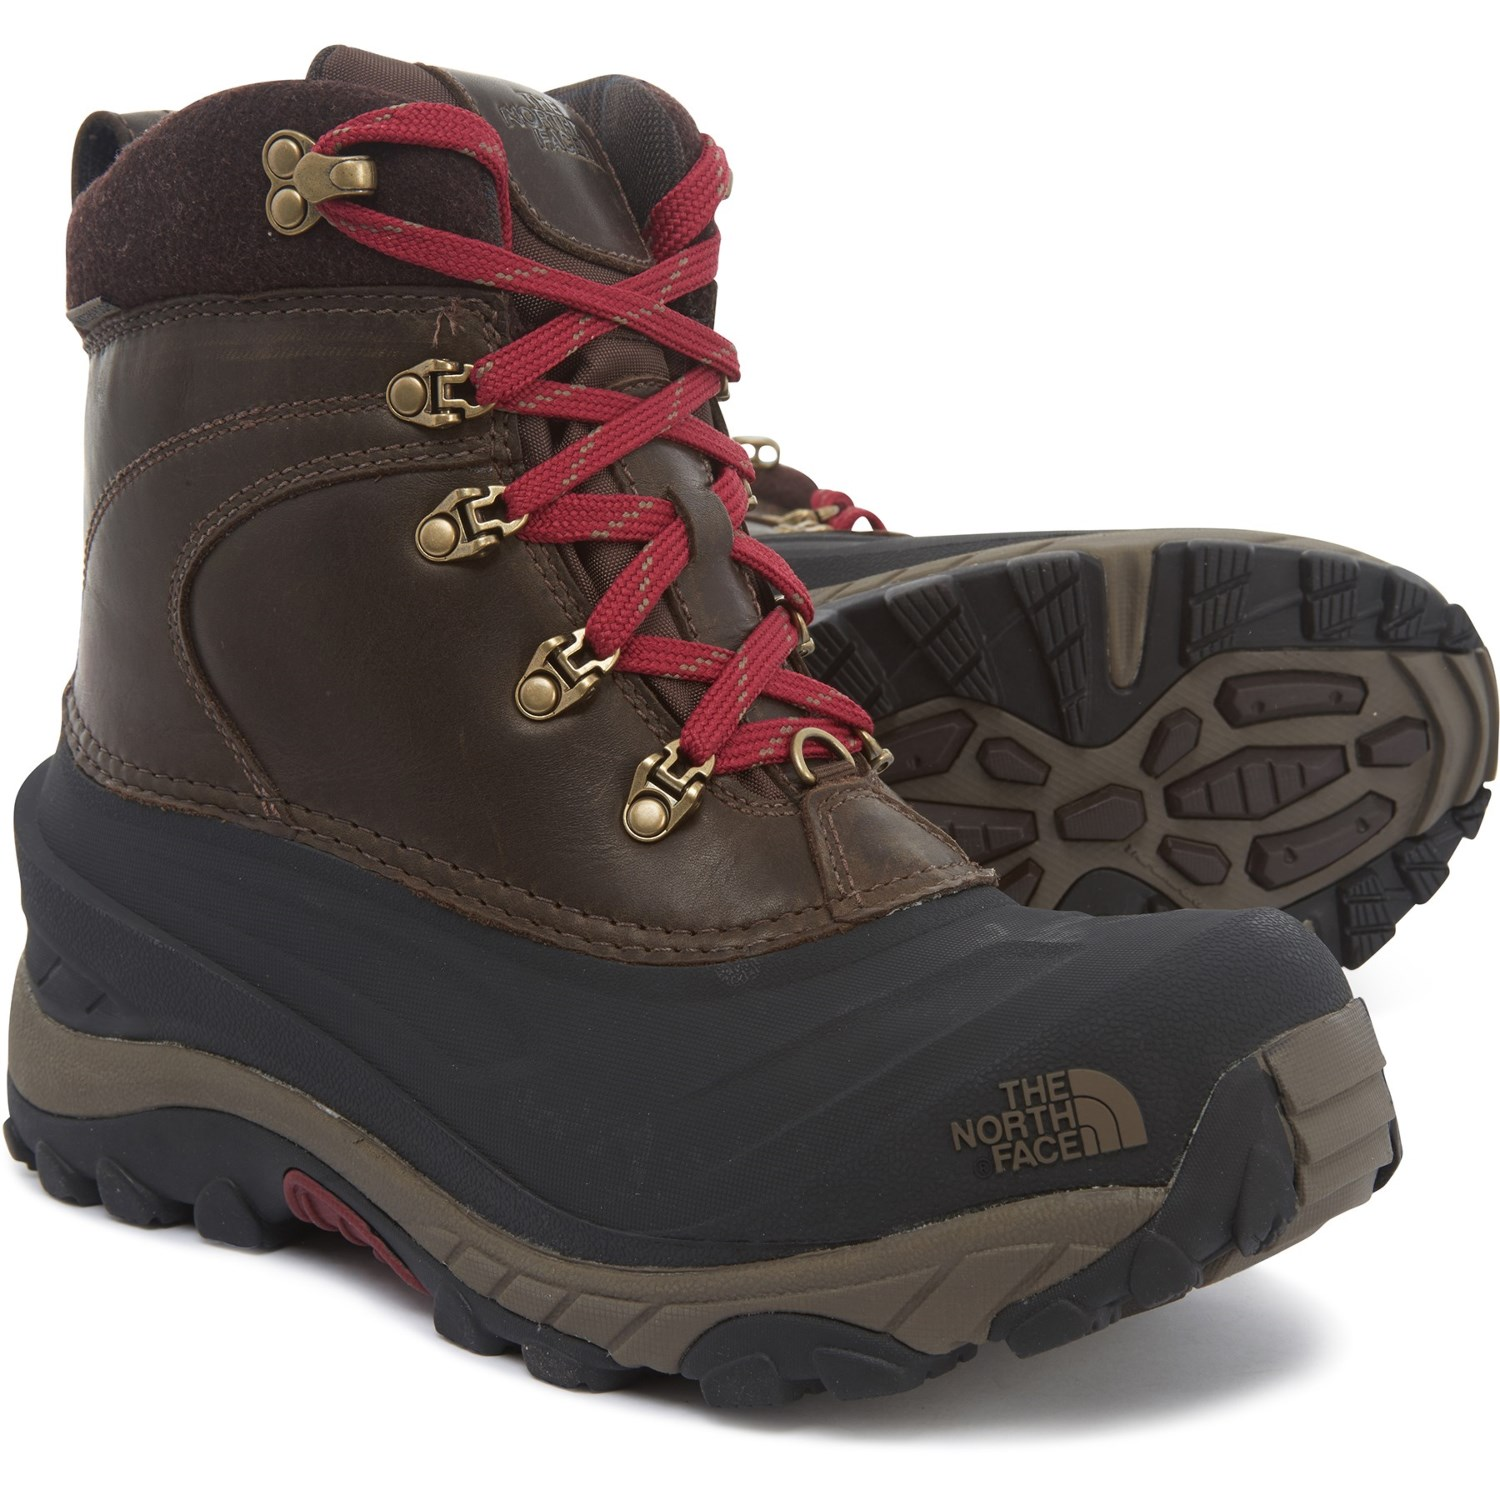 08af6444d The North Face Chilkat II Luxe Boots - Waterproof, Insulated (For Men)